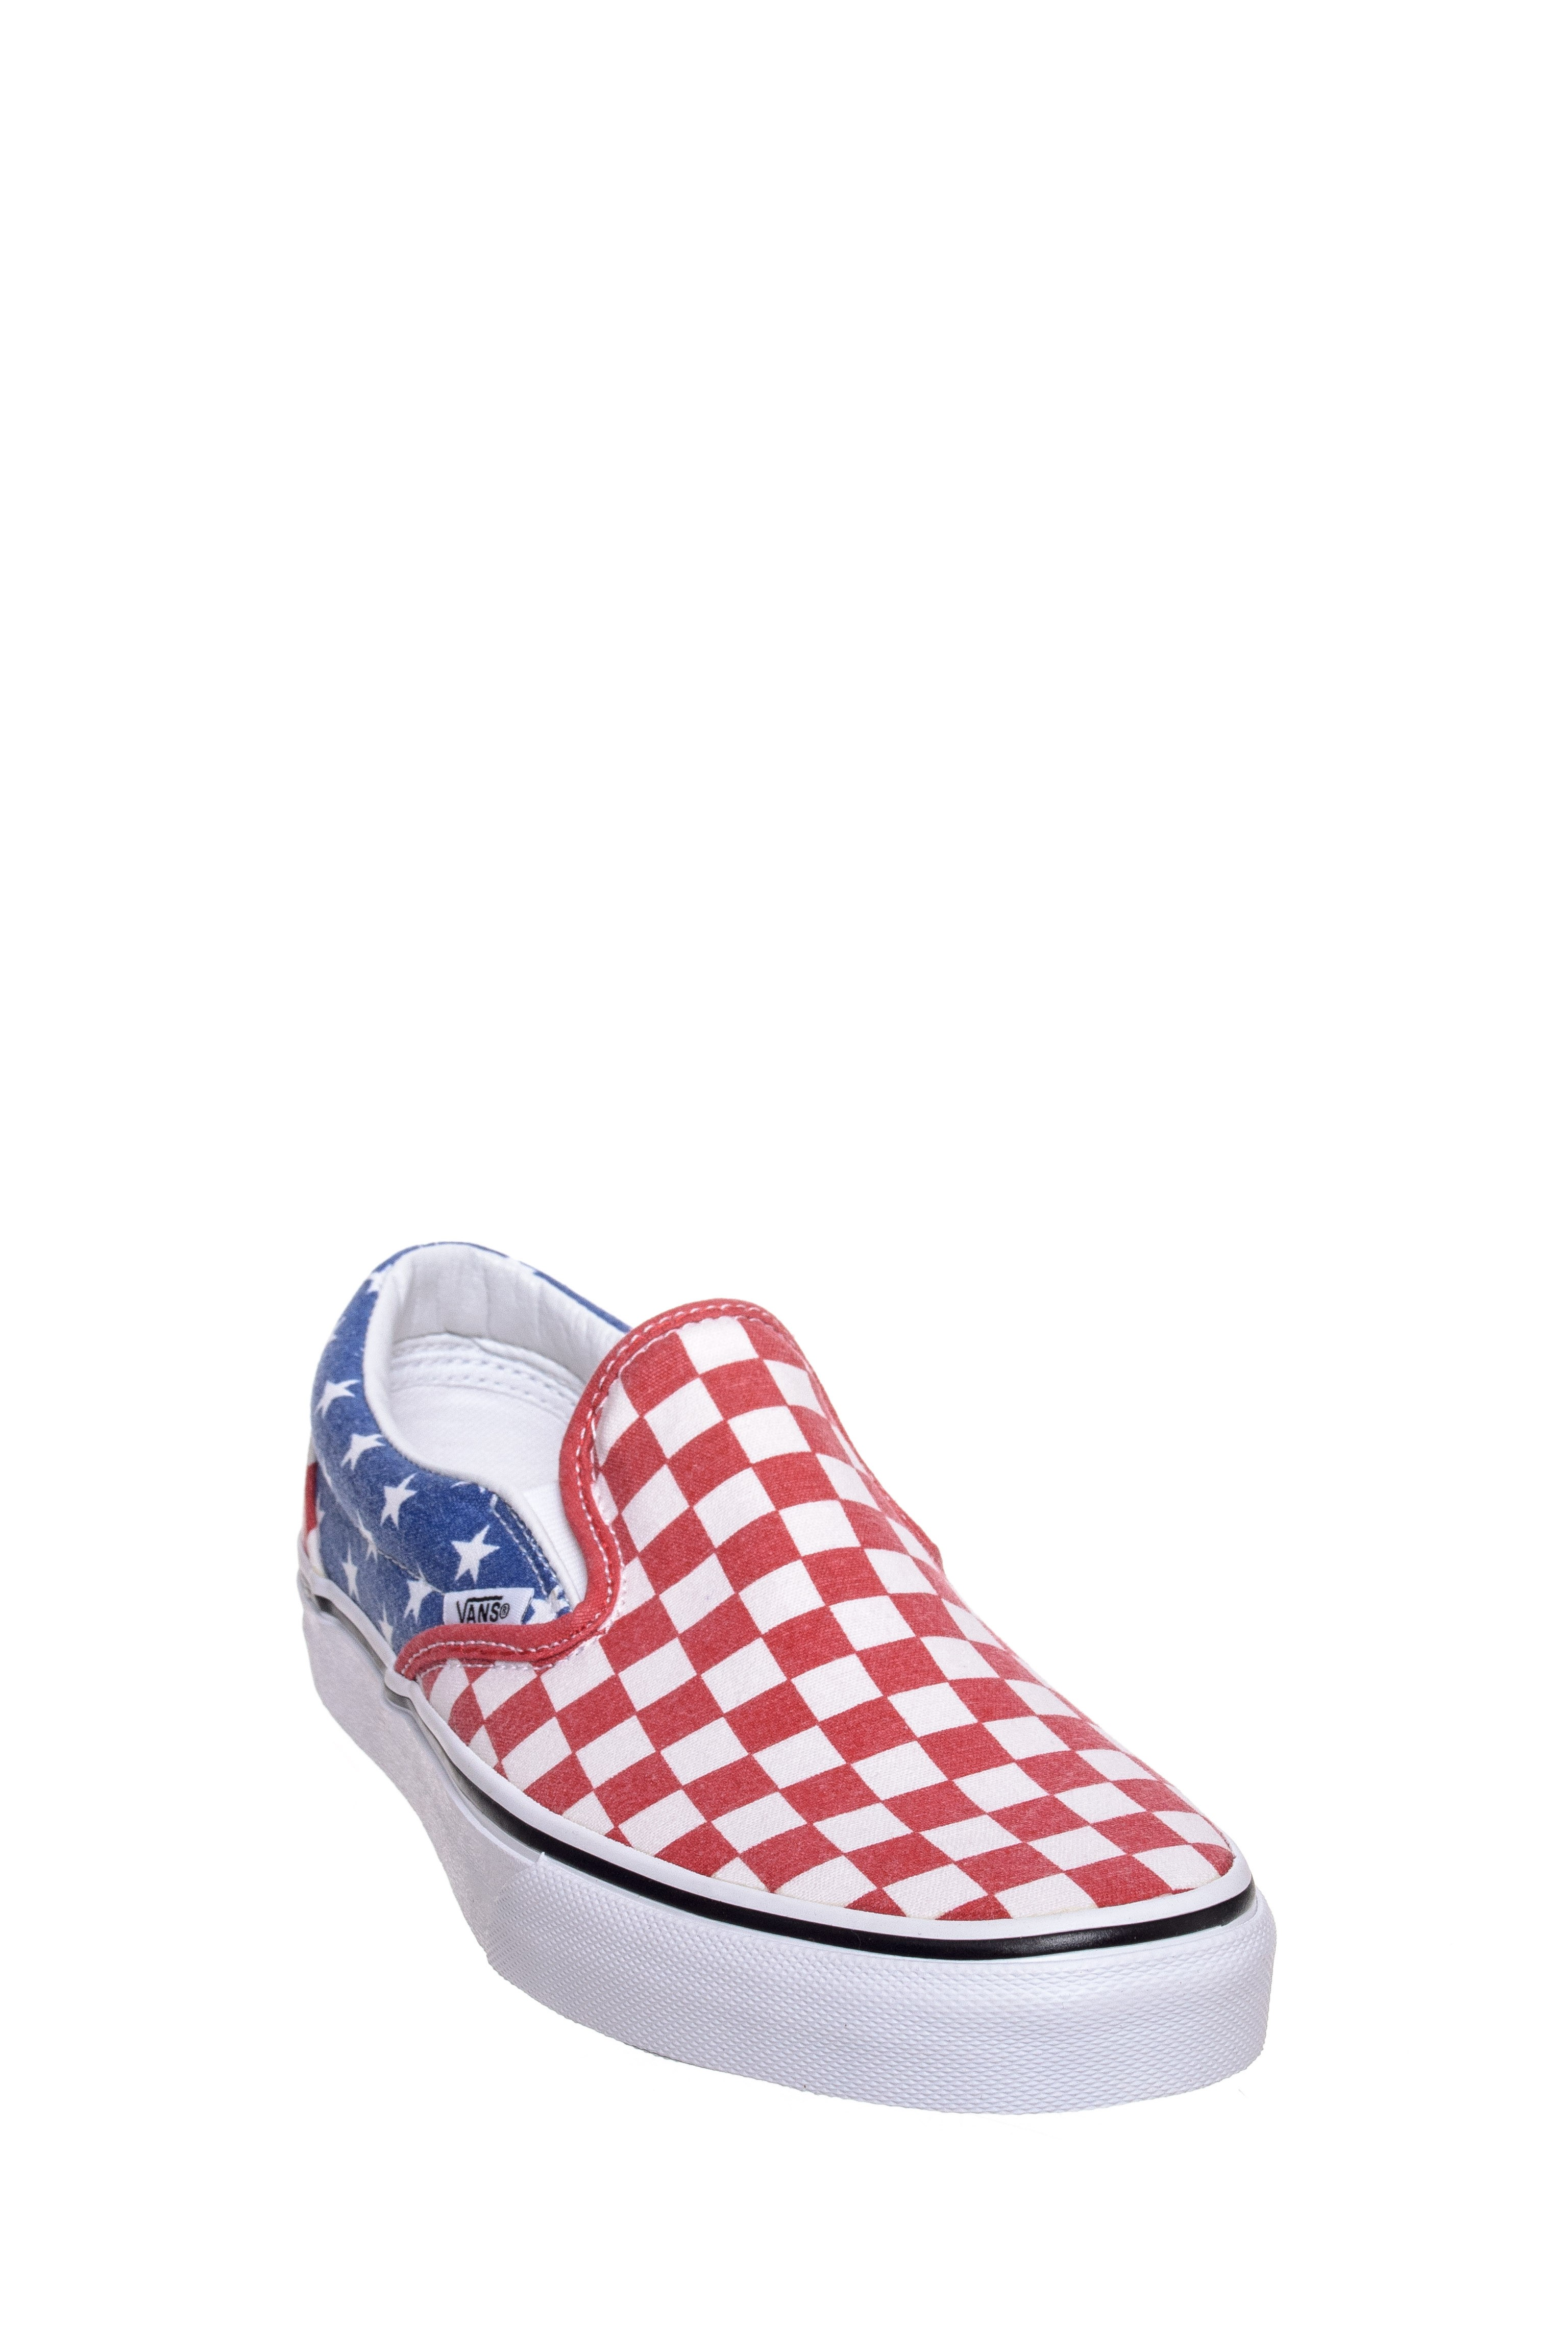 Vans Vans Men's Classic Slip On Van Doren Stars Stripes